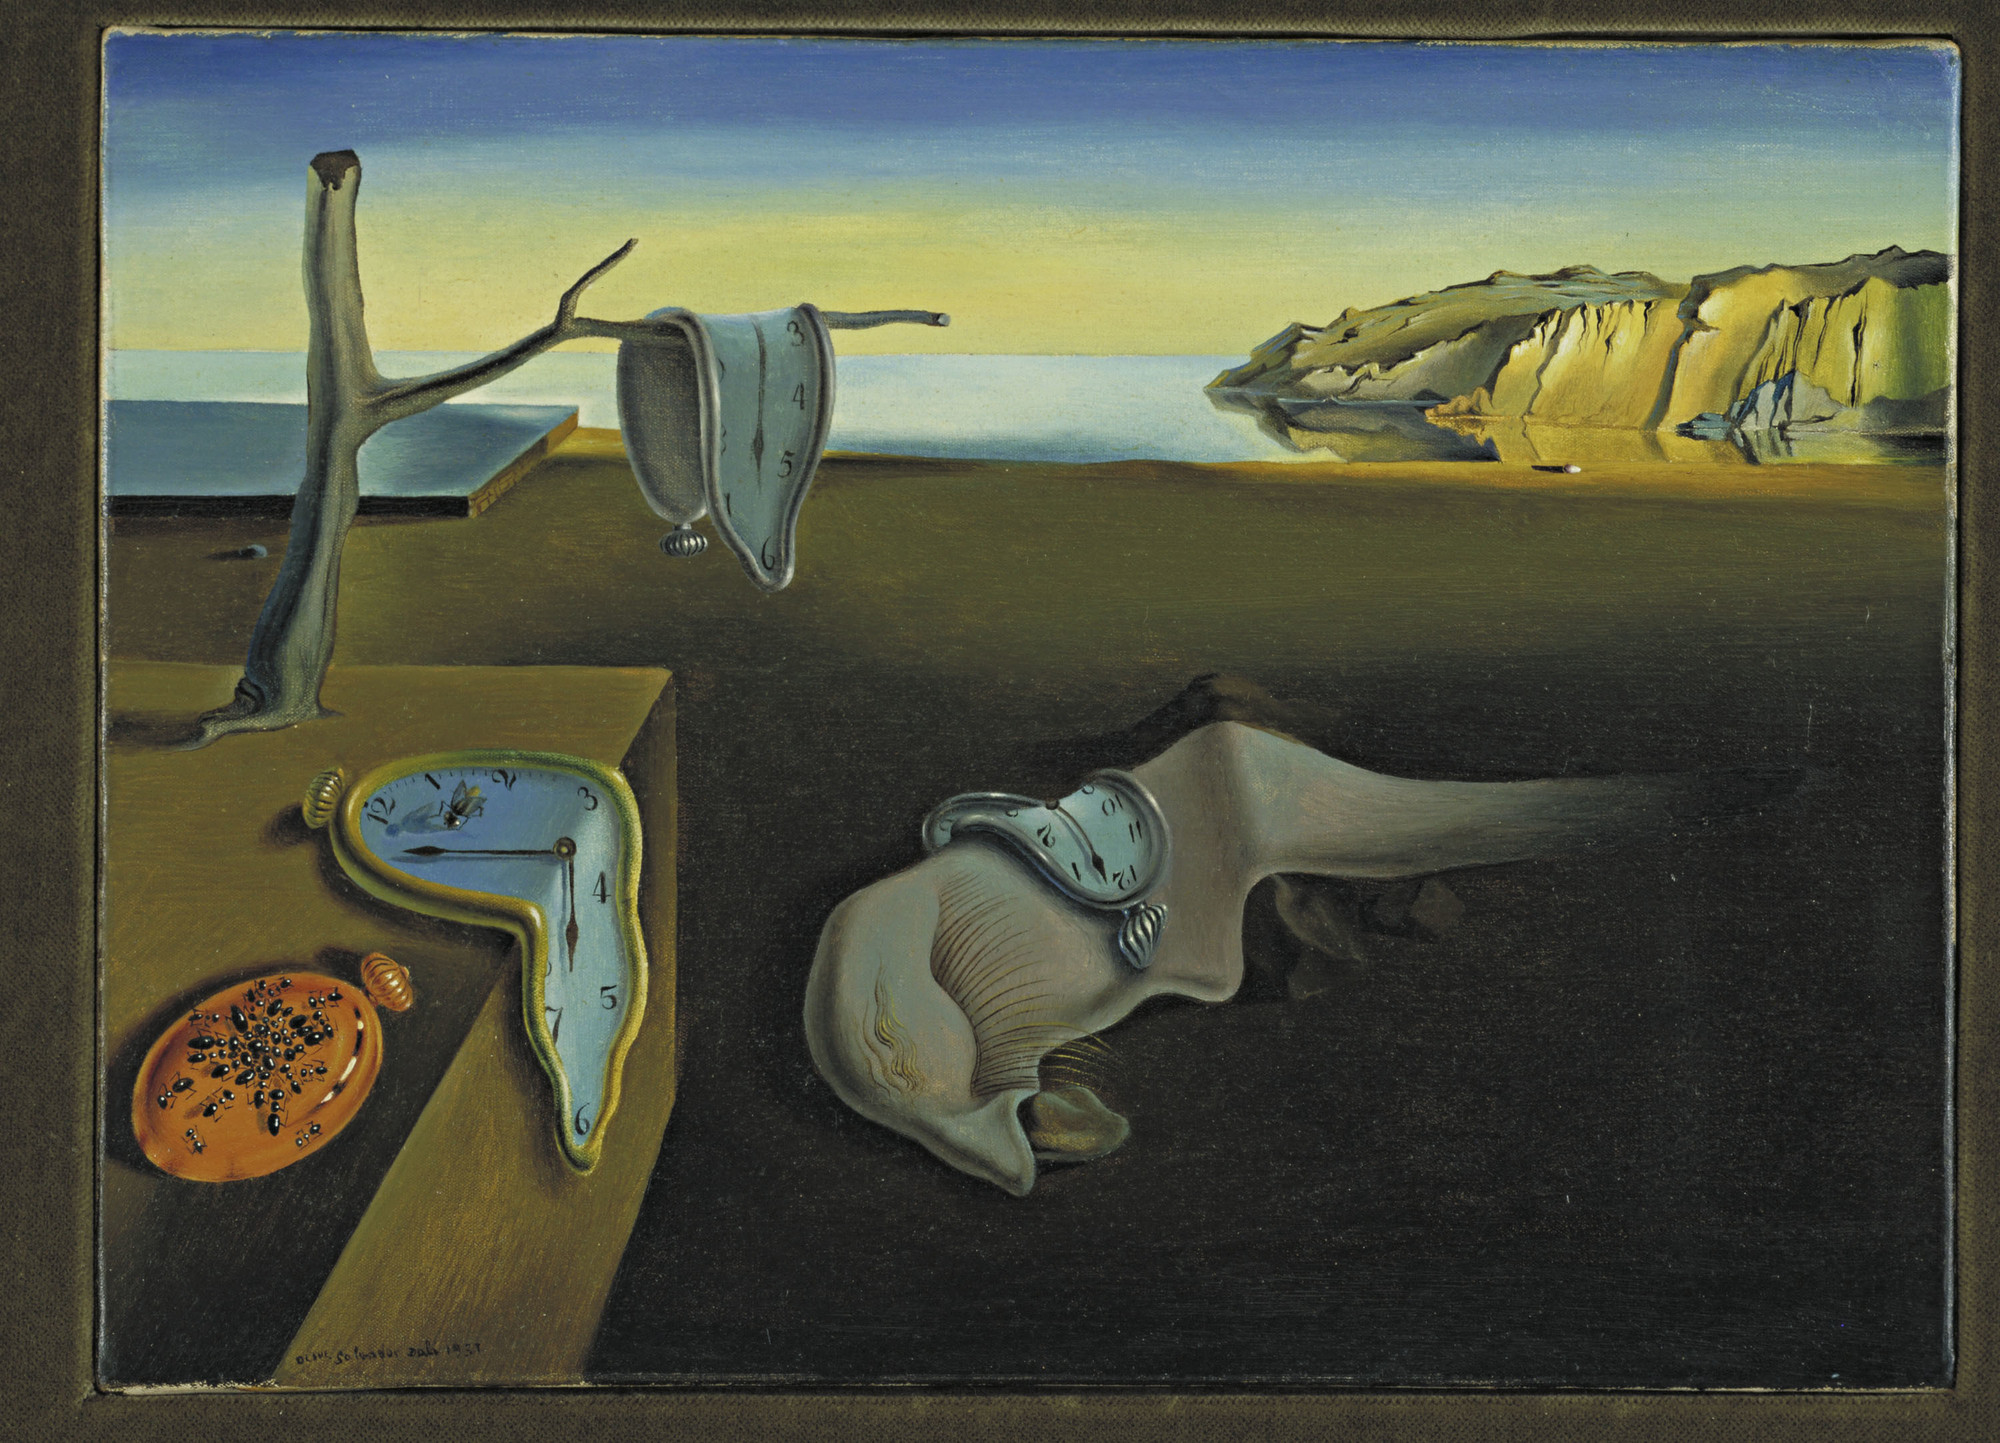 "Salvador Dalí. The Persistence of Memory. 1931. Oil on canvas, 9 1/2 x 13"" (24.1 x 33 cm). The Museum of Modern Art, New York. Given anonymously. © 2015 Salvador Dalí, Gala-Salvador Dalí Foundation/Artists Rights Society (ARS), New York"